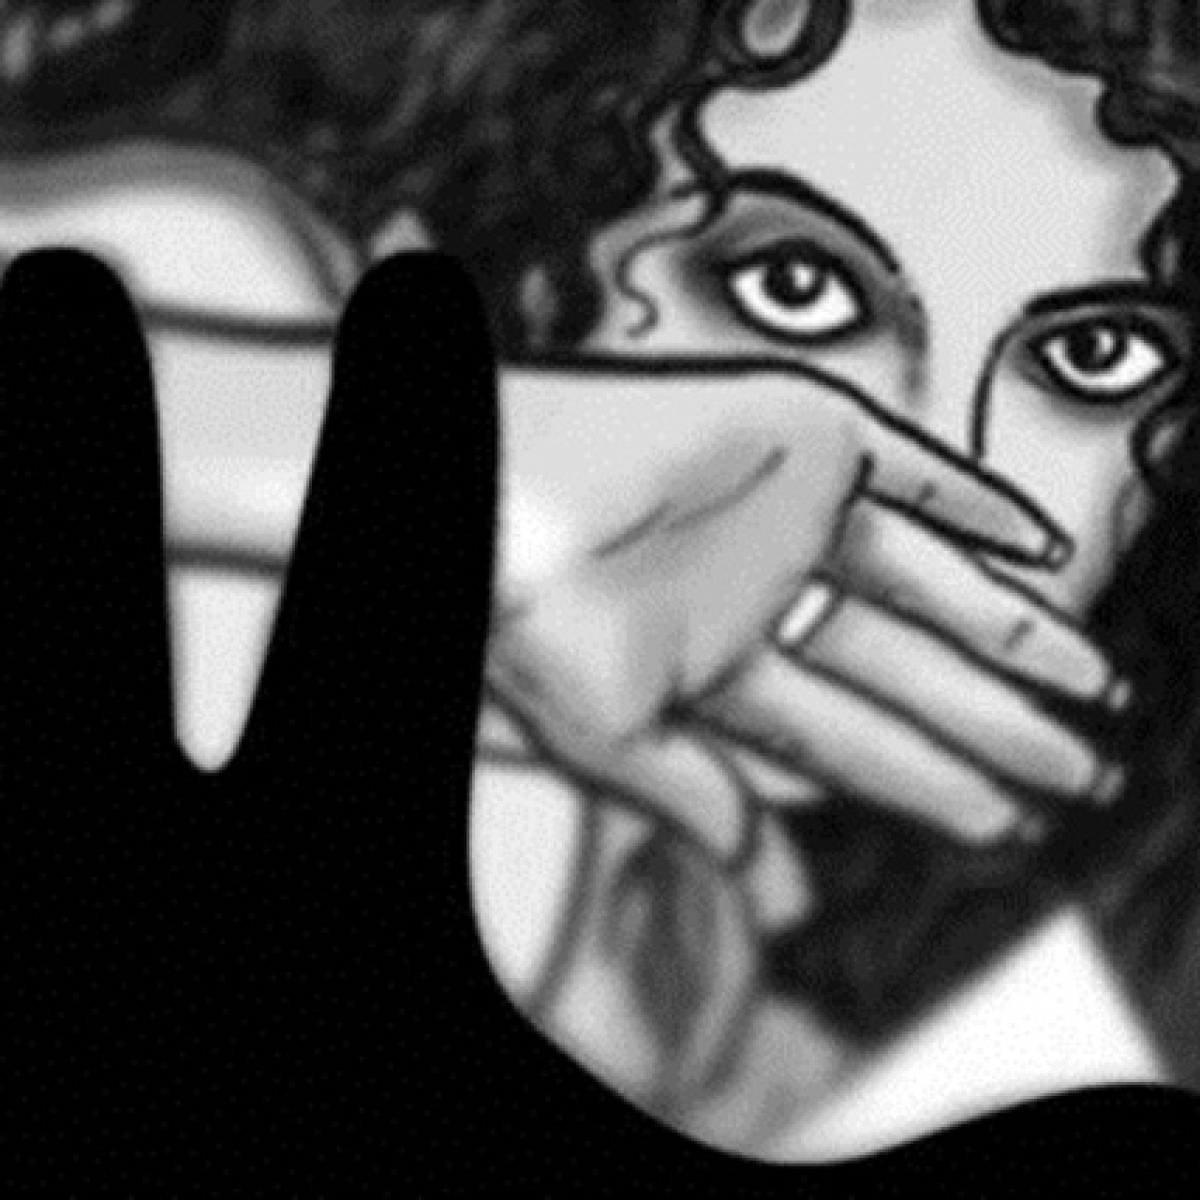 Pune: Architect alleges doctor molested her as she was from lower caste, complaint filed